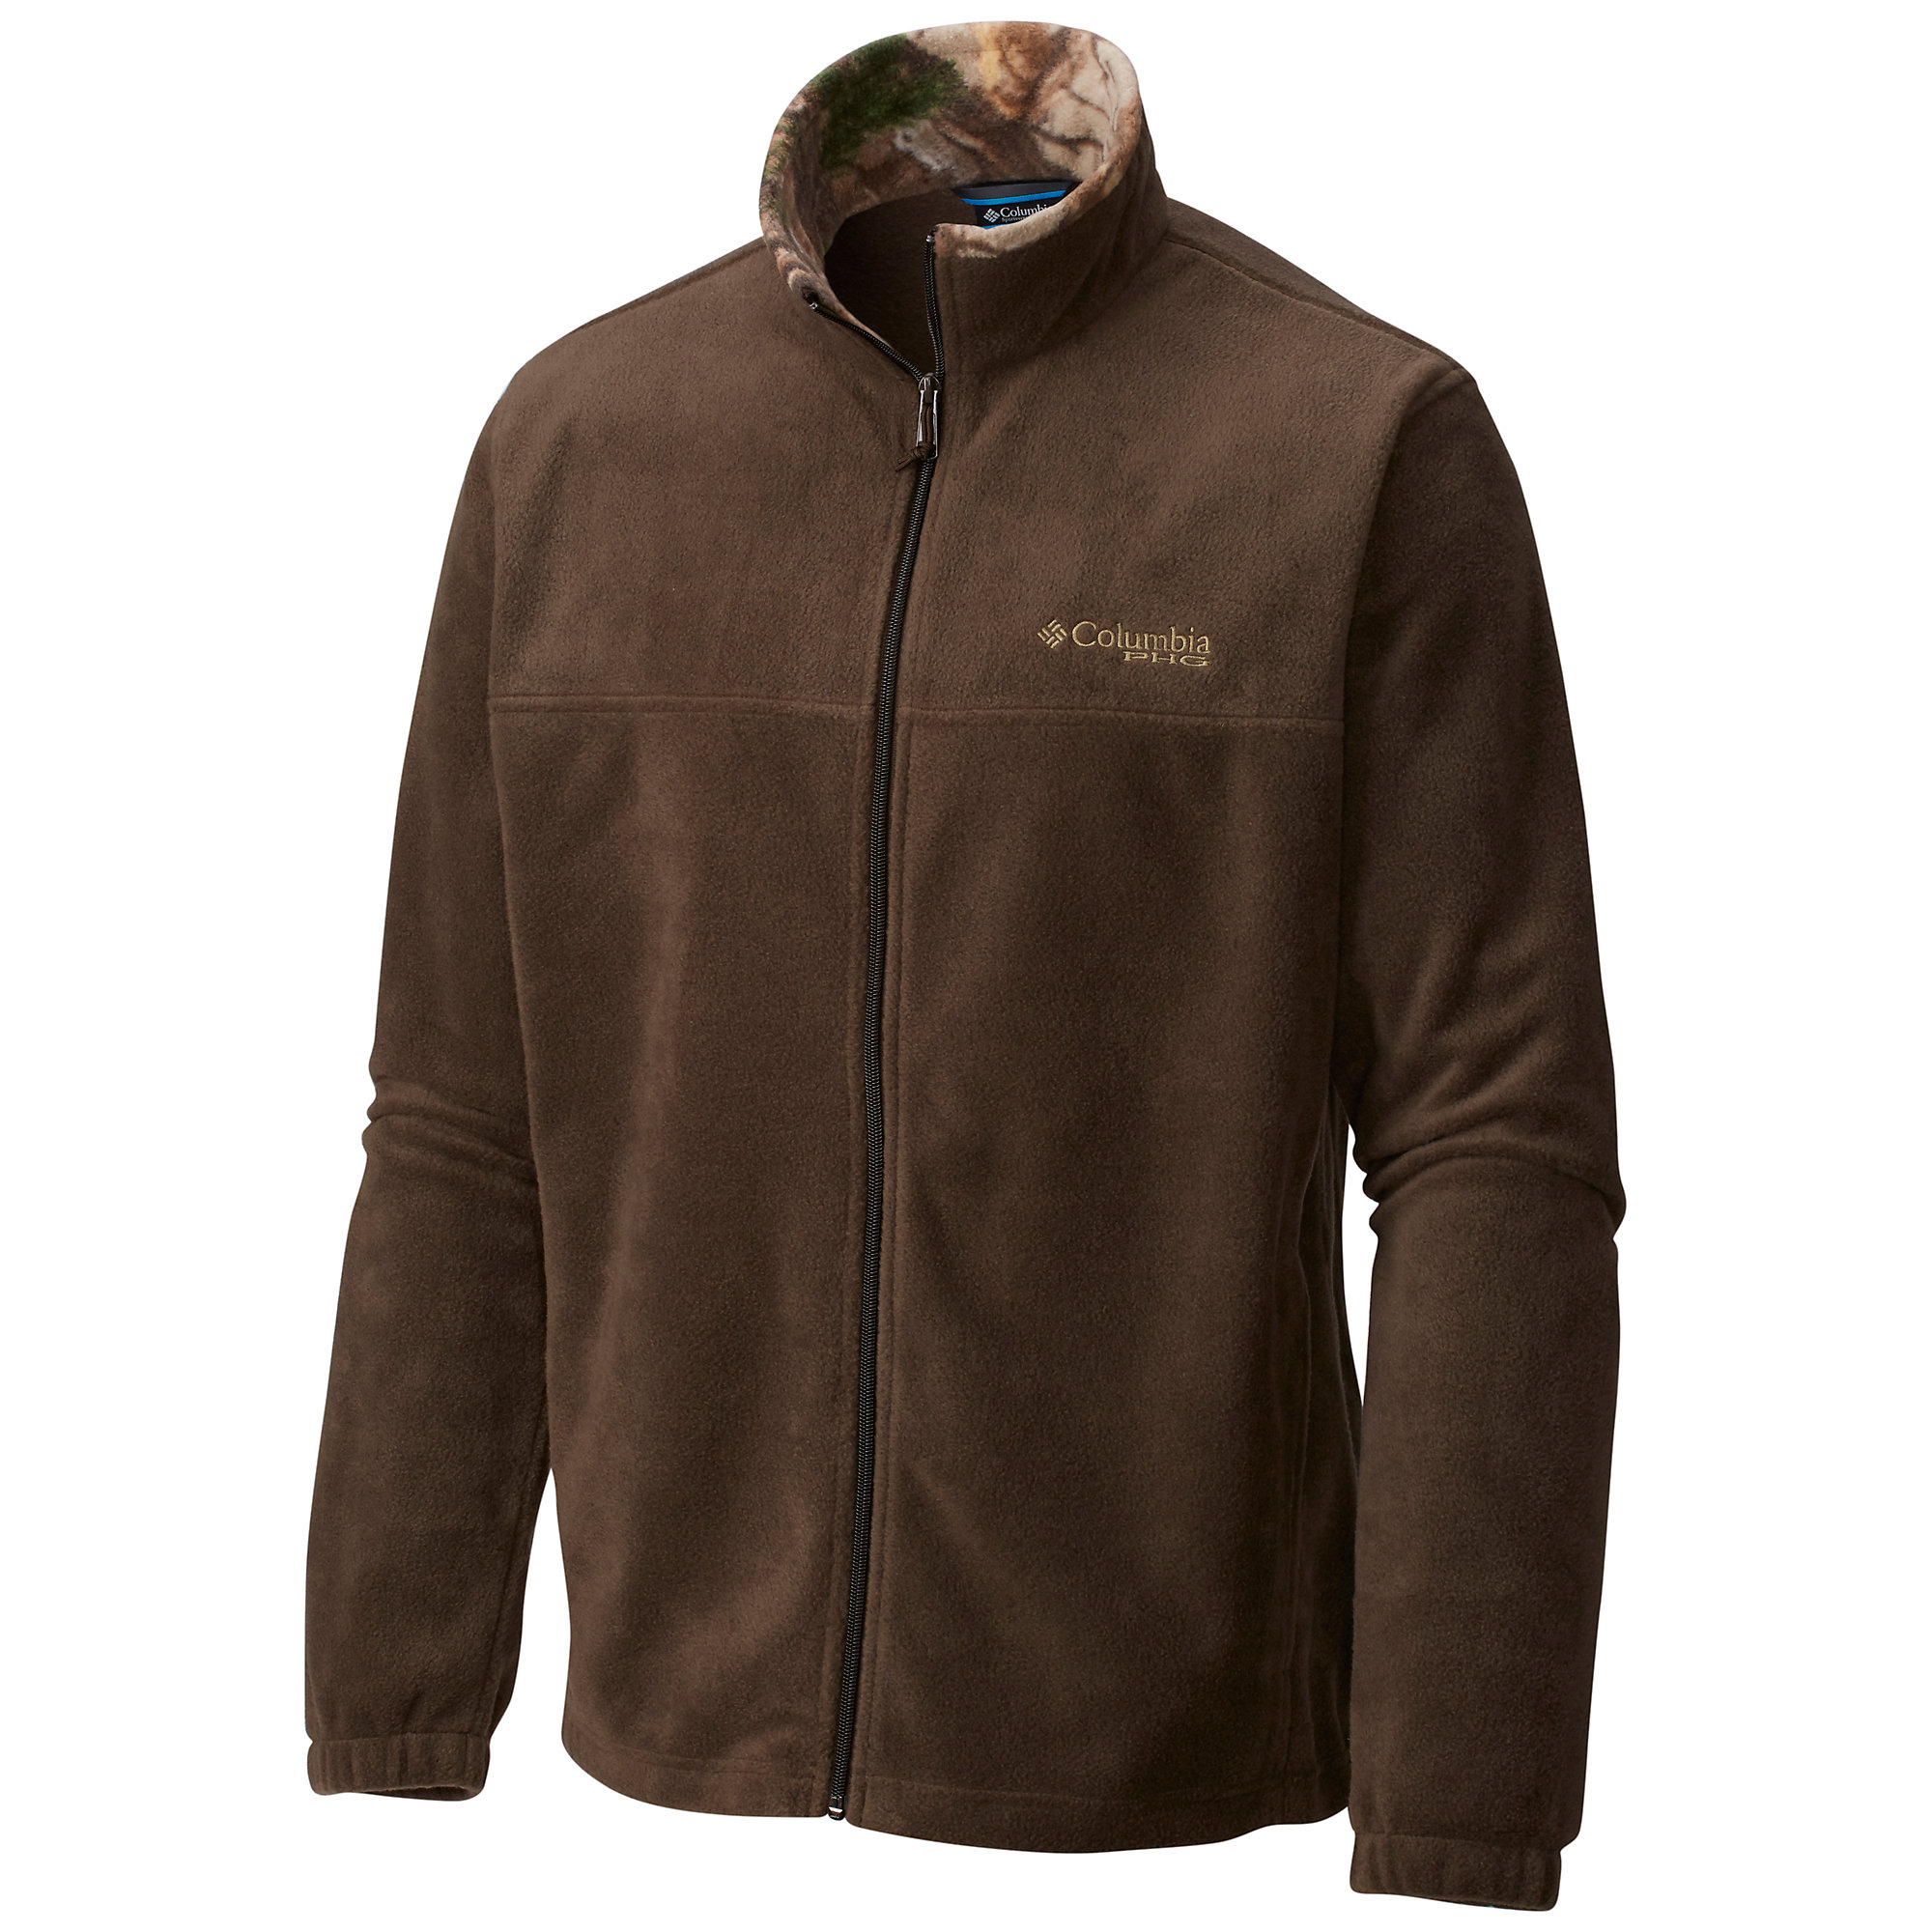 Columbia PHG Fleece Jacket